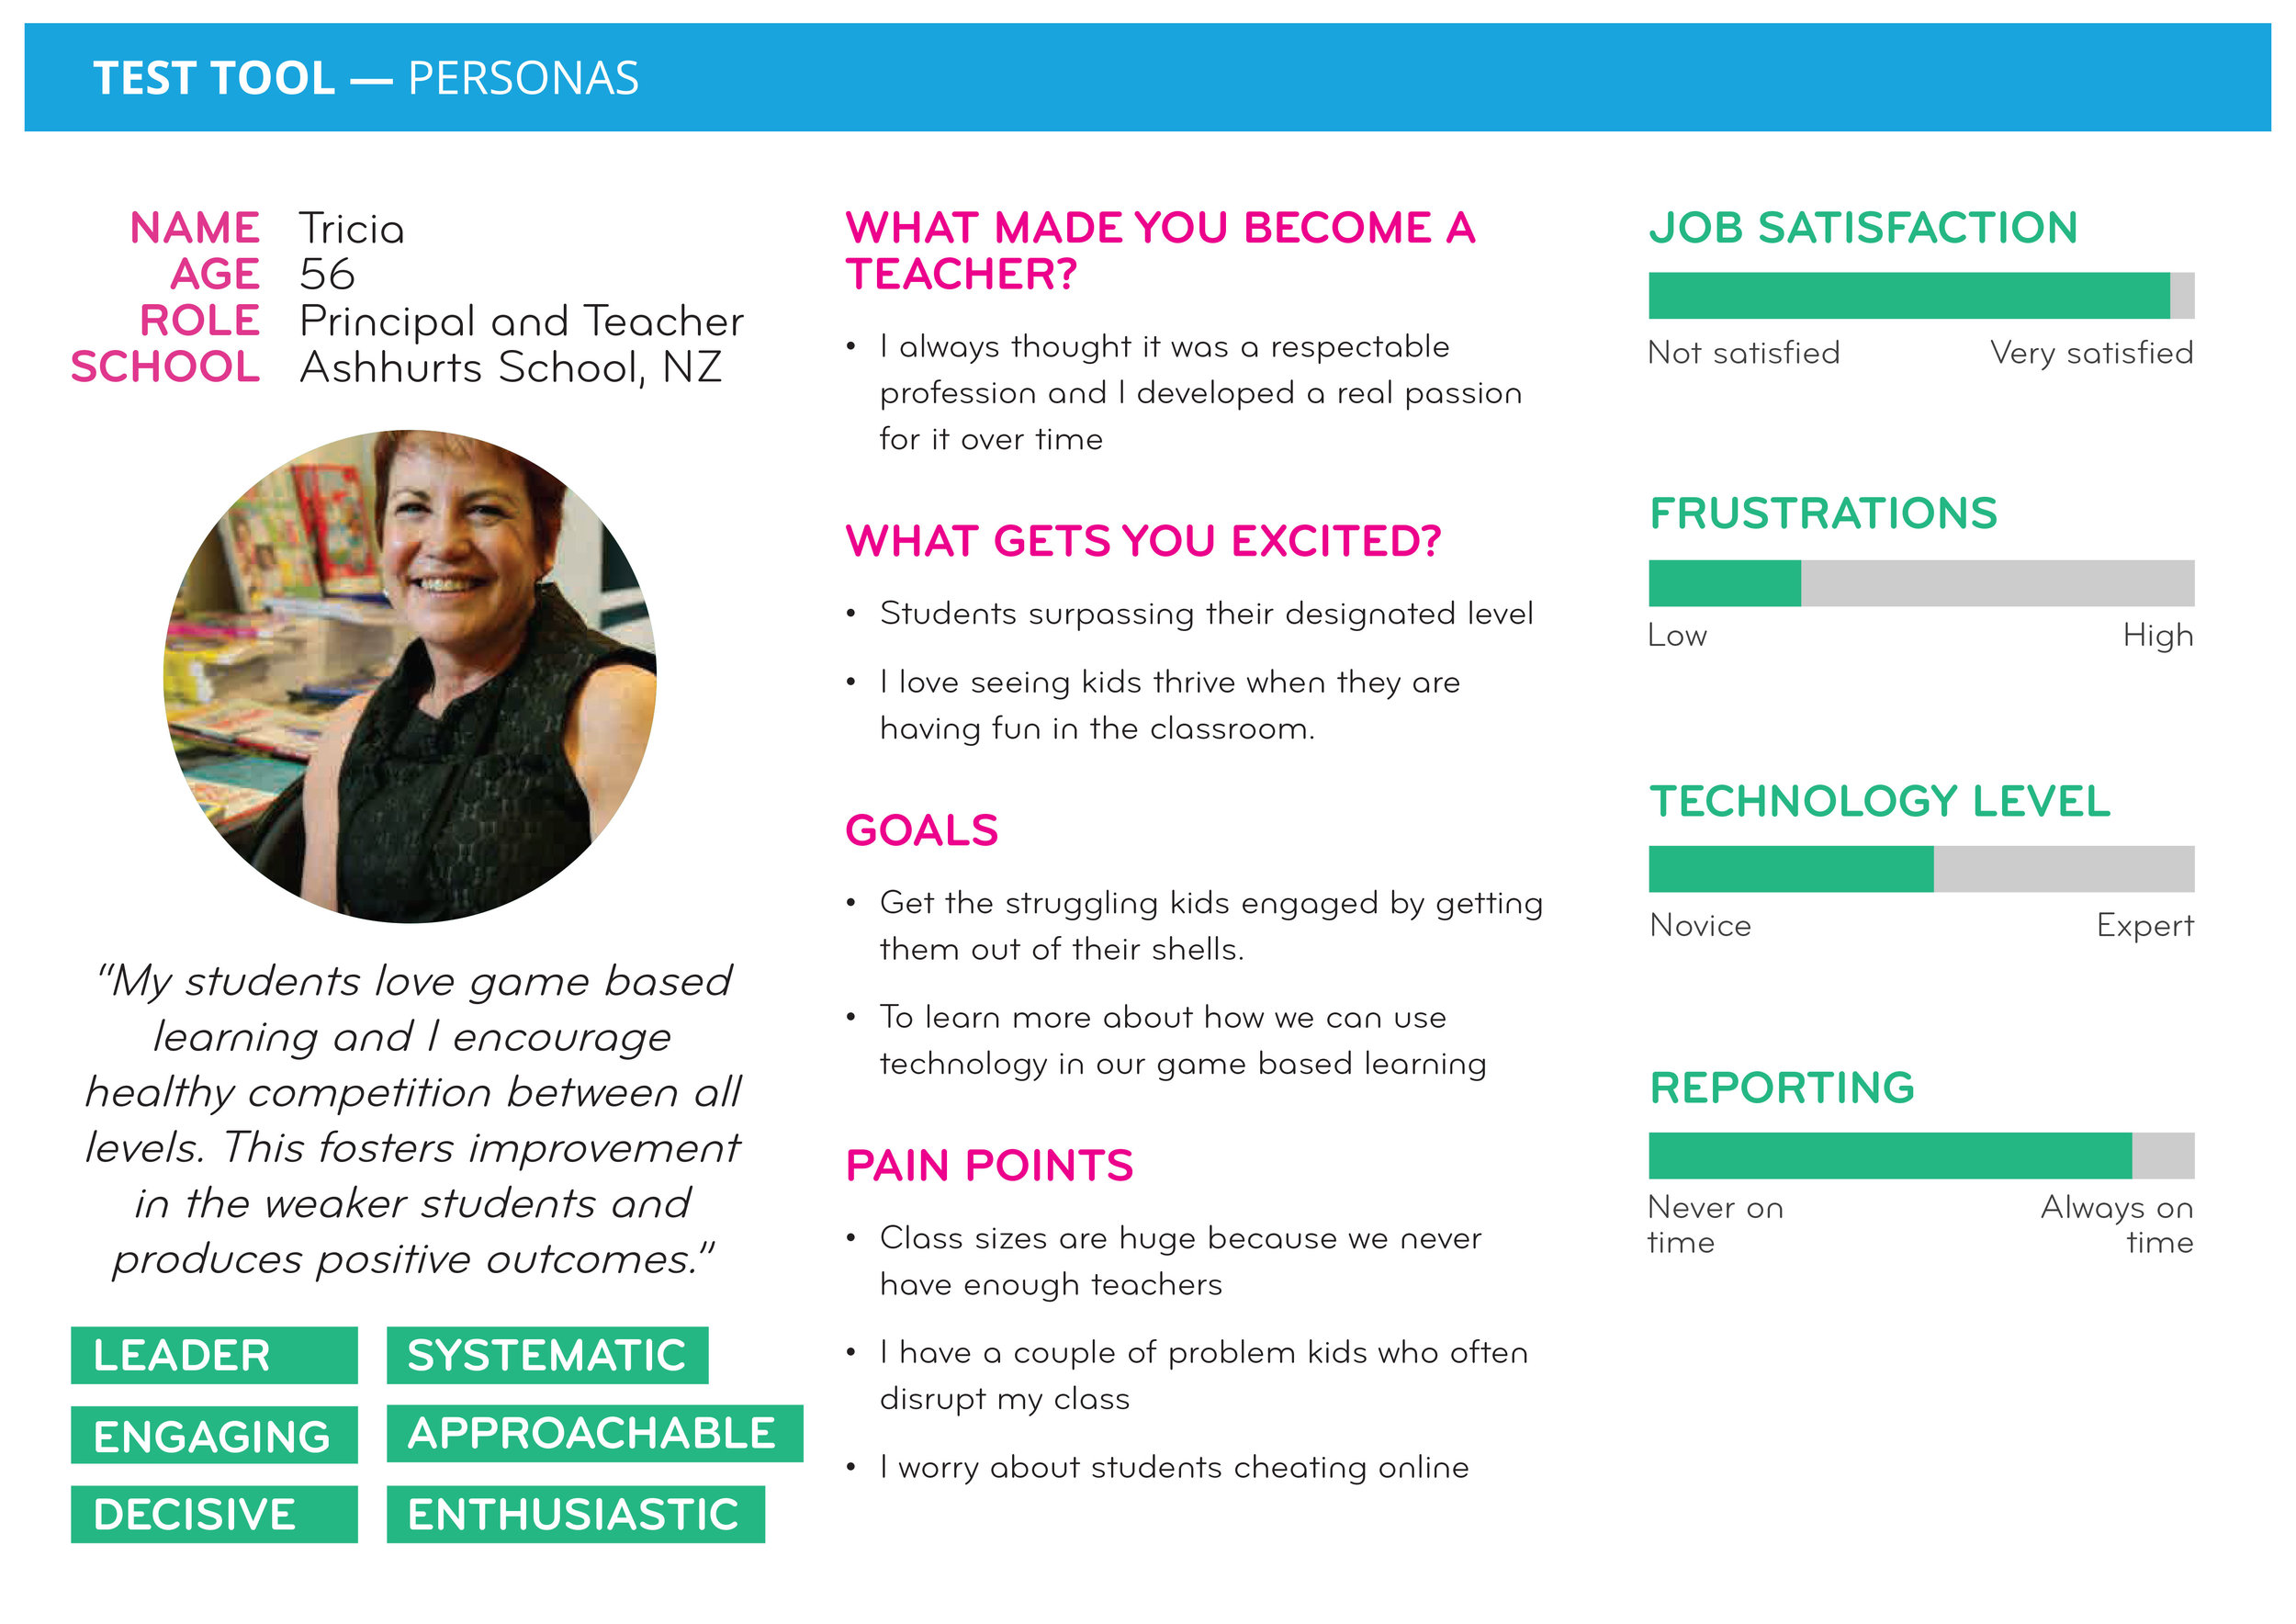 Example of a Principal/Teacher's Persona